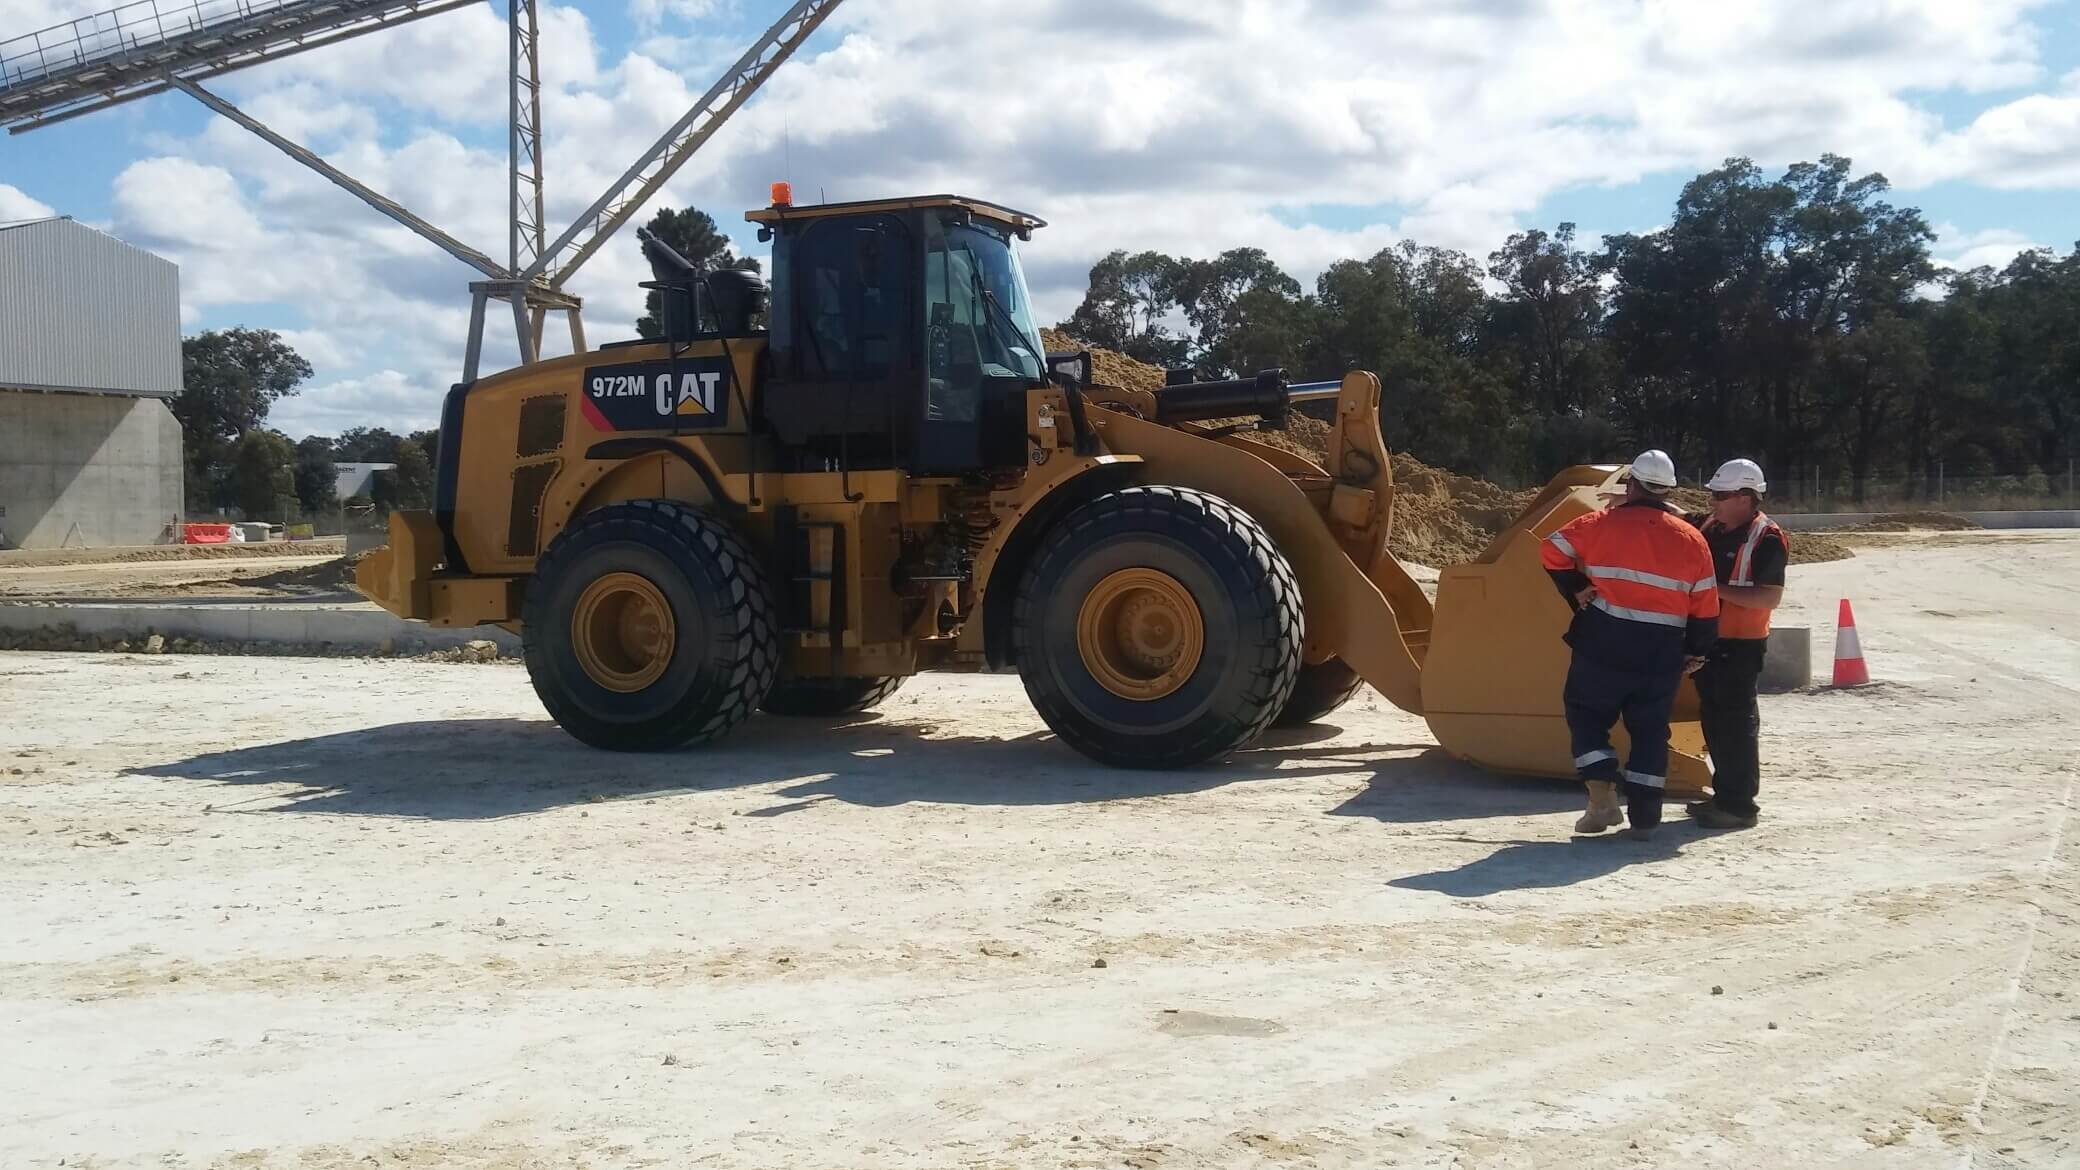 WA Sand Supply and Haulage Loader_972M